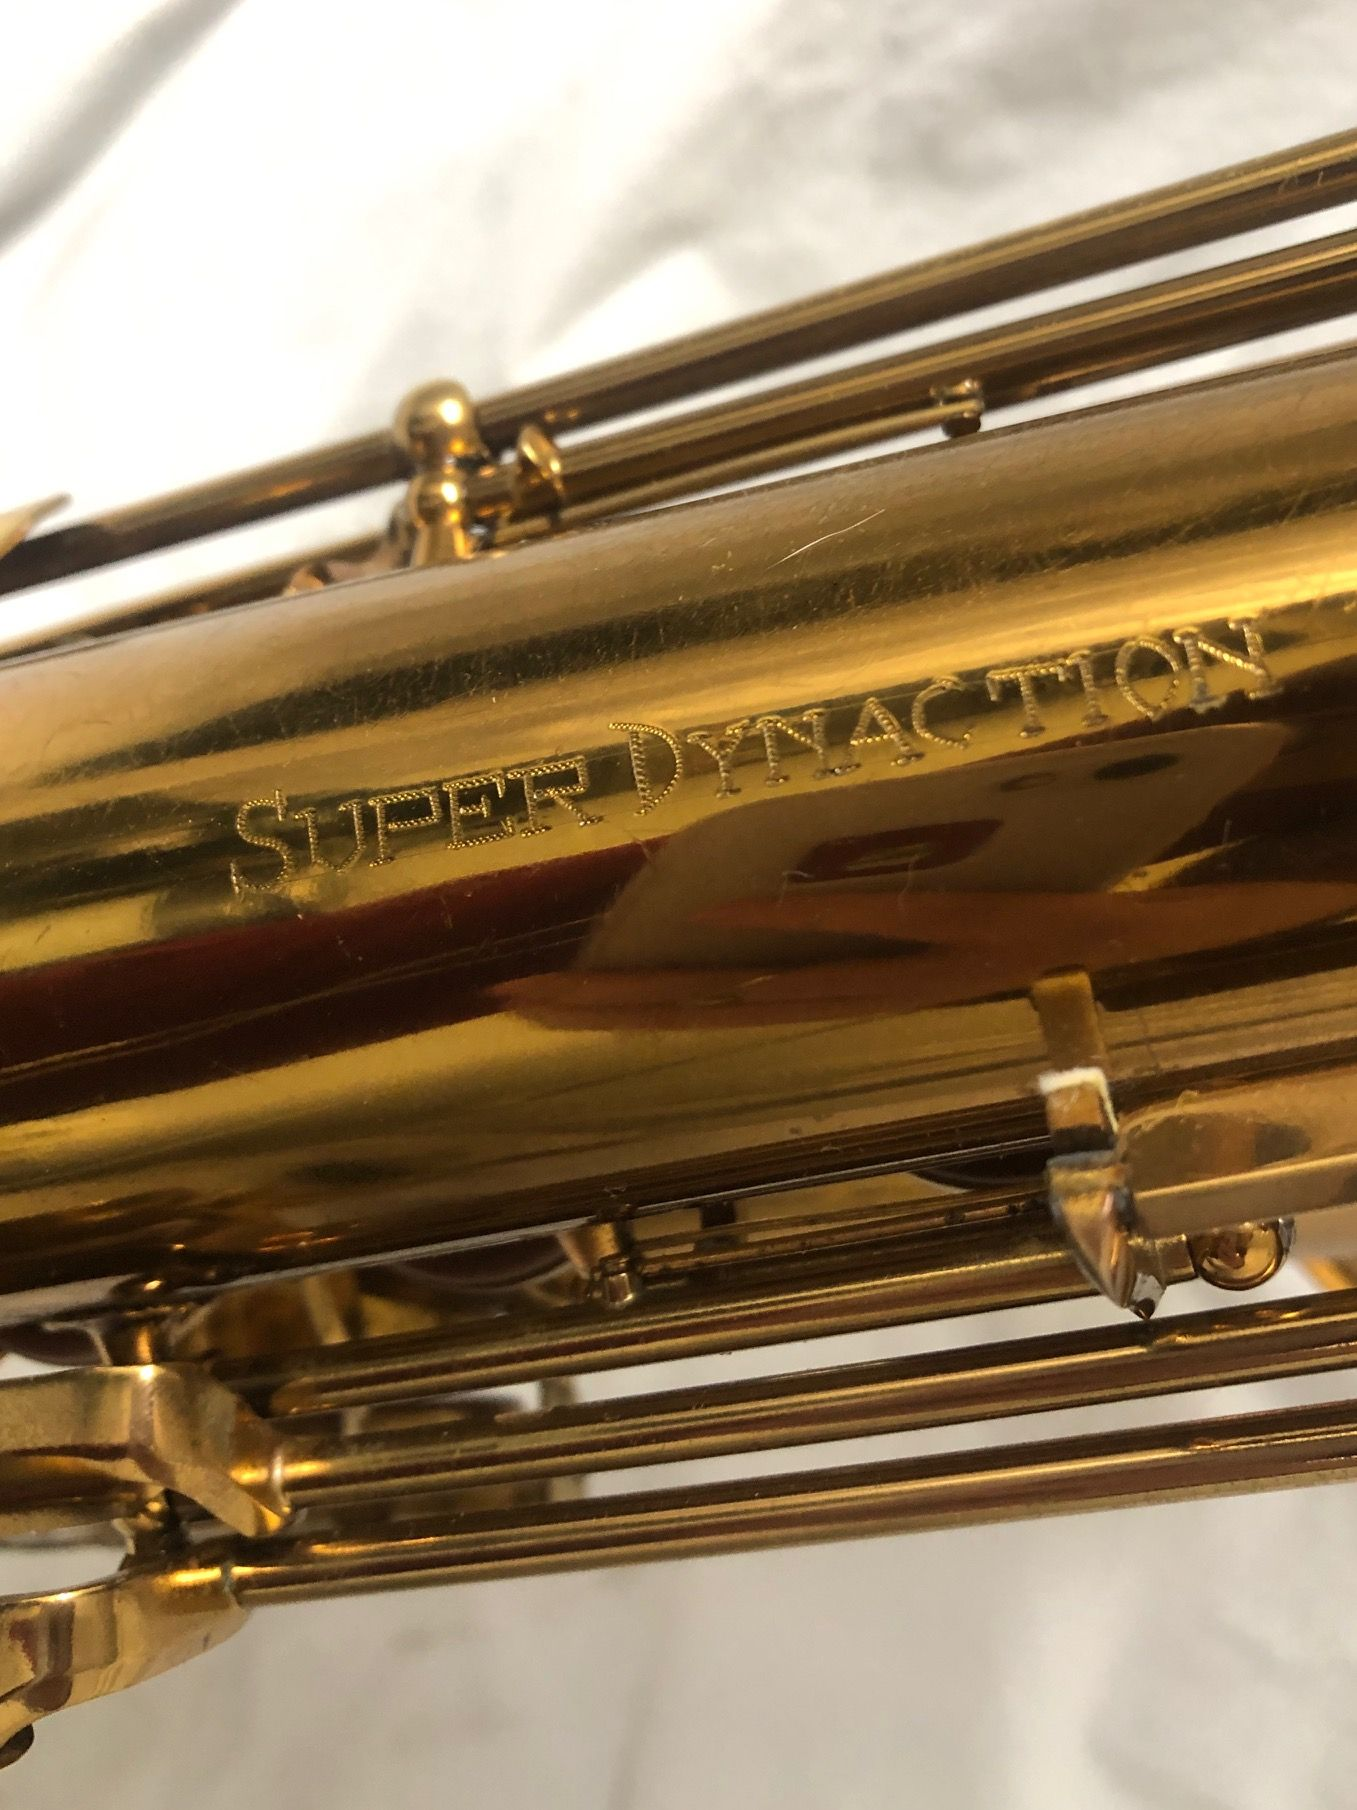 Incredible Gorgeous Sparkling Lacquer Buffet Super Dynaction Tenor Sax Home Interior And Landscaping Analalmasignezvosmurscom